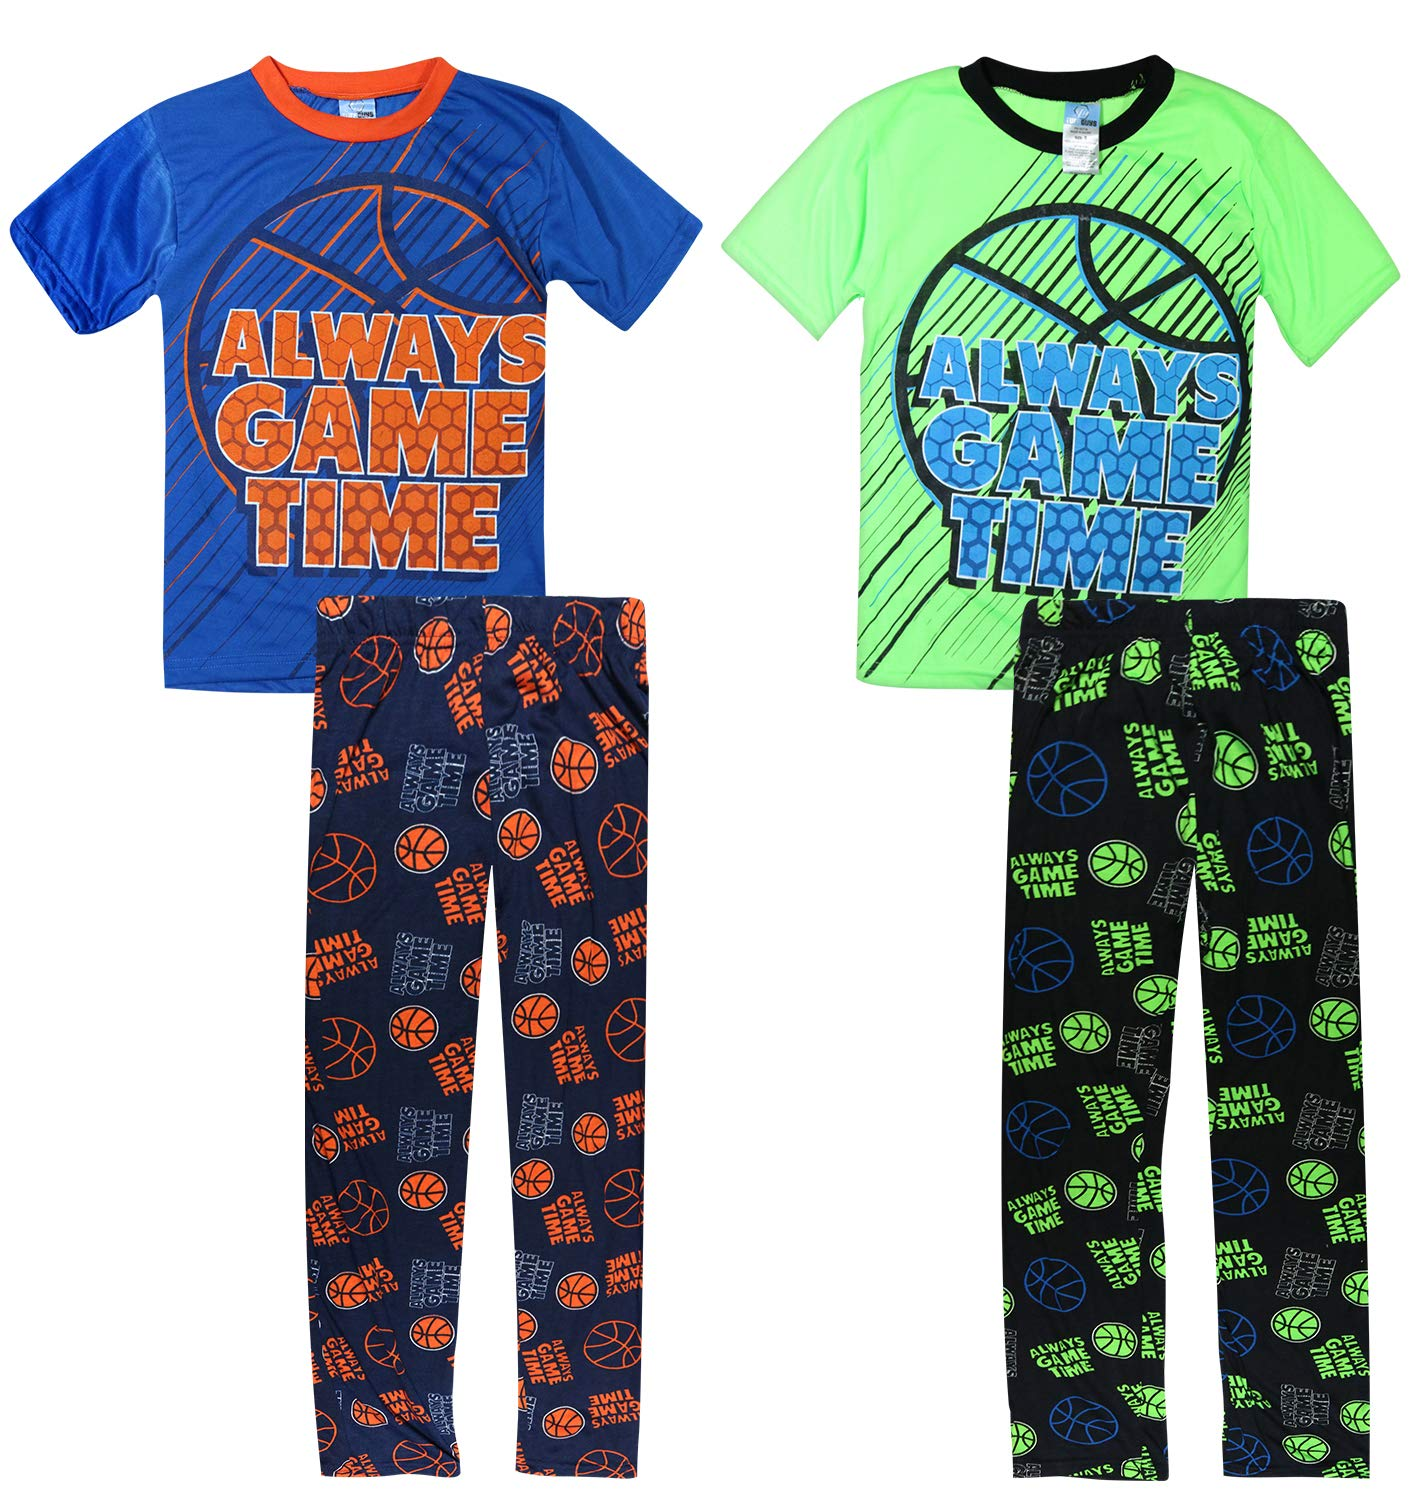 Tuff Guys Boys 4-Piece Sport Themed Pajama Set with Short Sleeve T-Shirt and Matching Pants, Game Time, Size 10/12